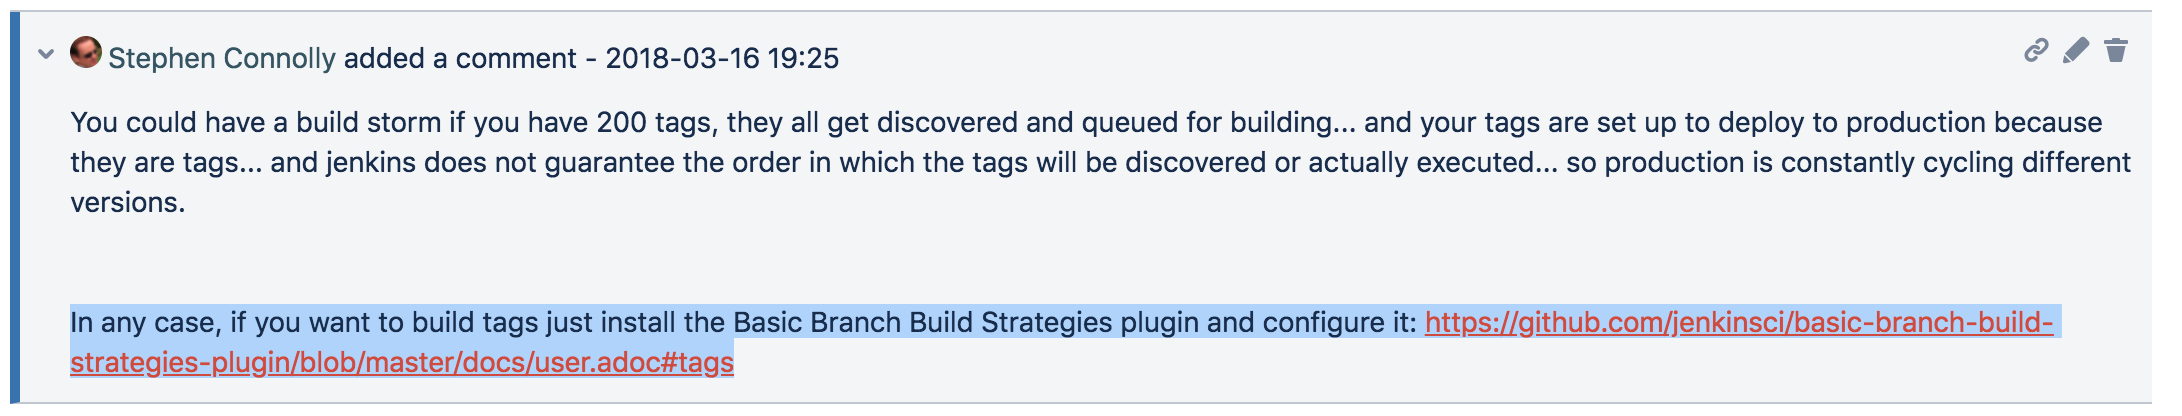 JENKINS-47496] No automatic builds for tags - Jenkins JIRA